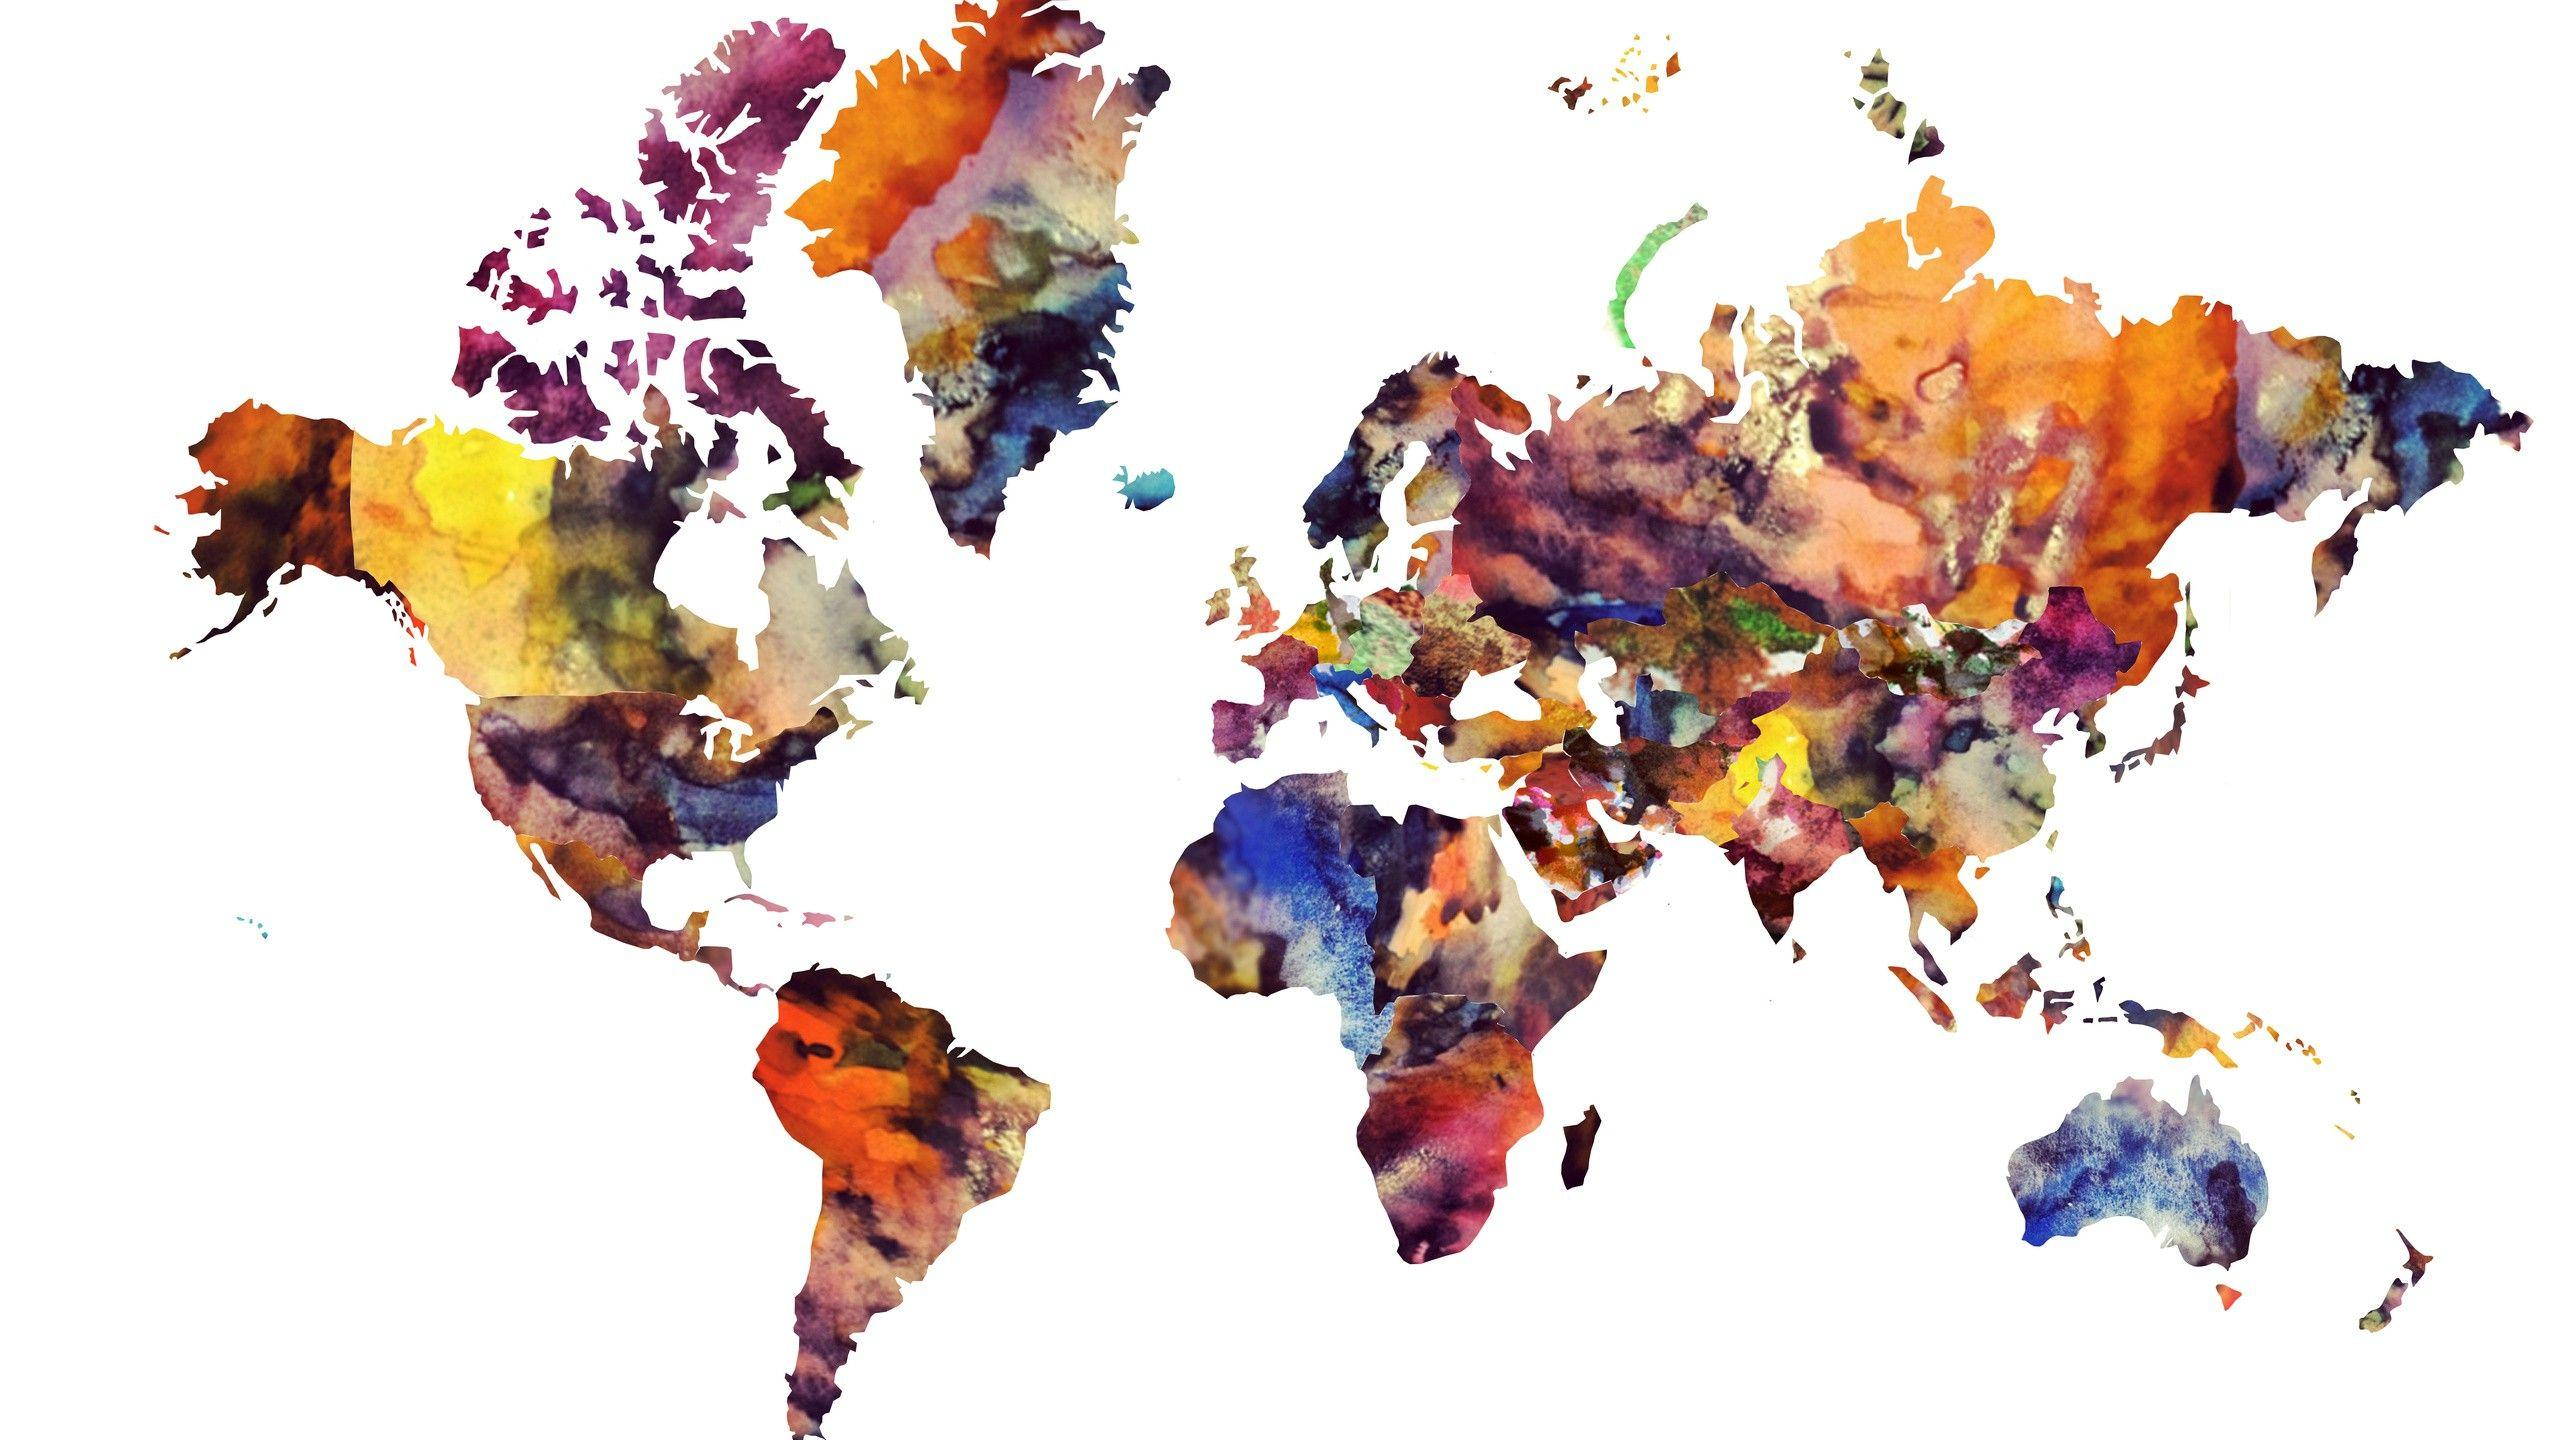 World Map Watercolor Wallpaper Inspirationa 2560x1440 Maps